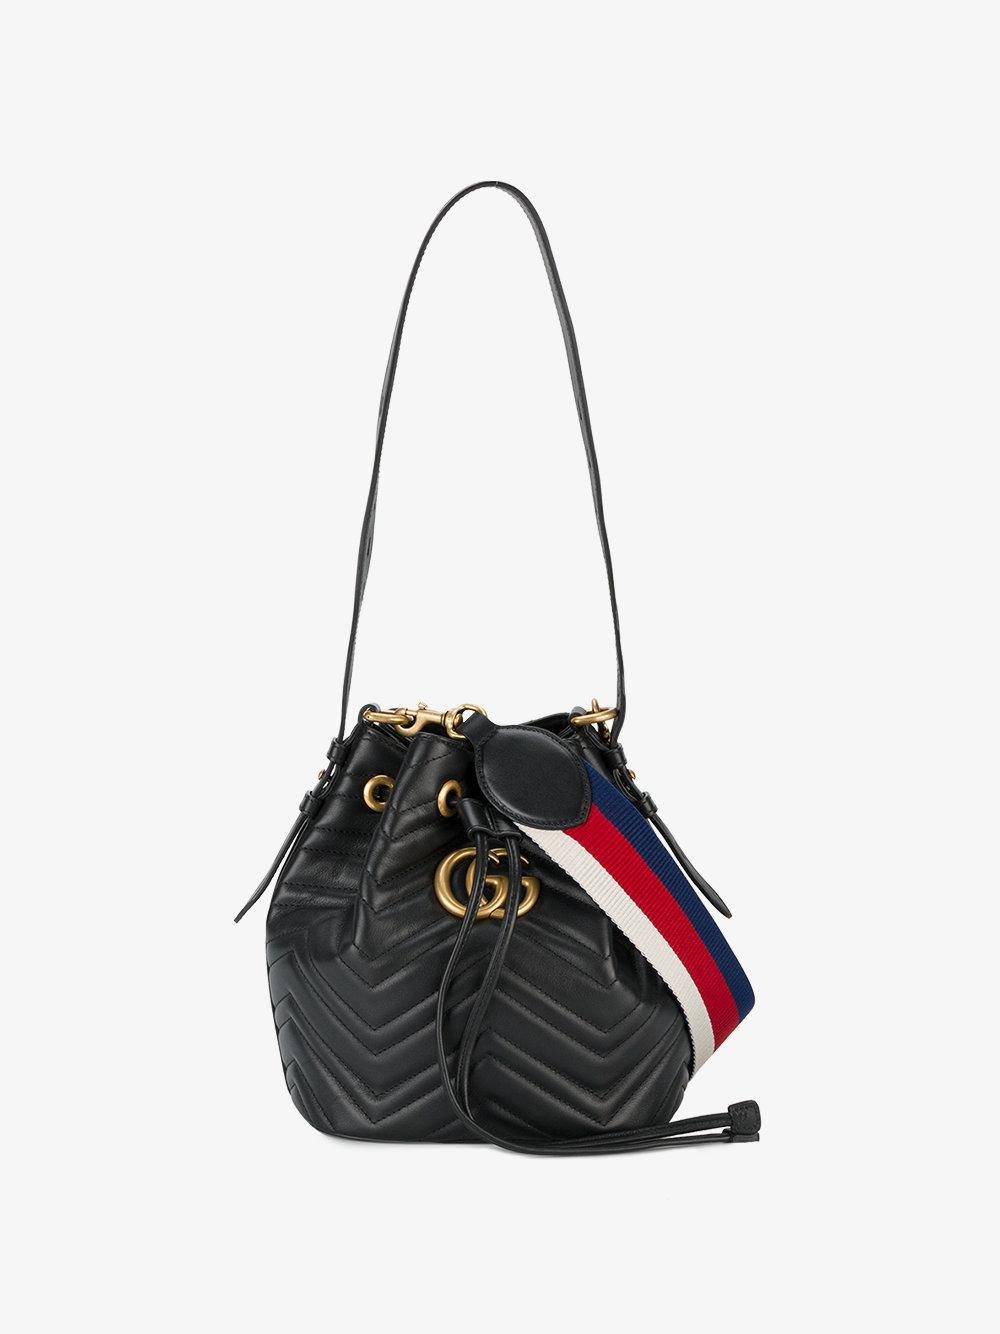 1f011622de Gucci Black Marmont Mini Bucket Bag